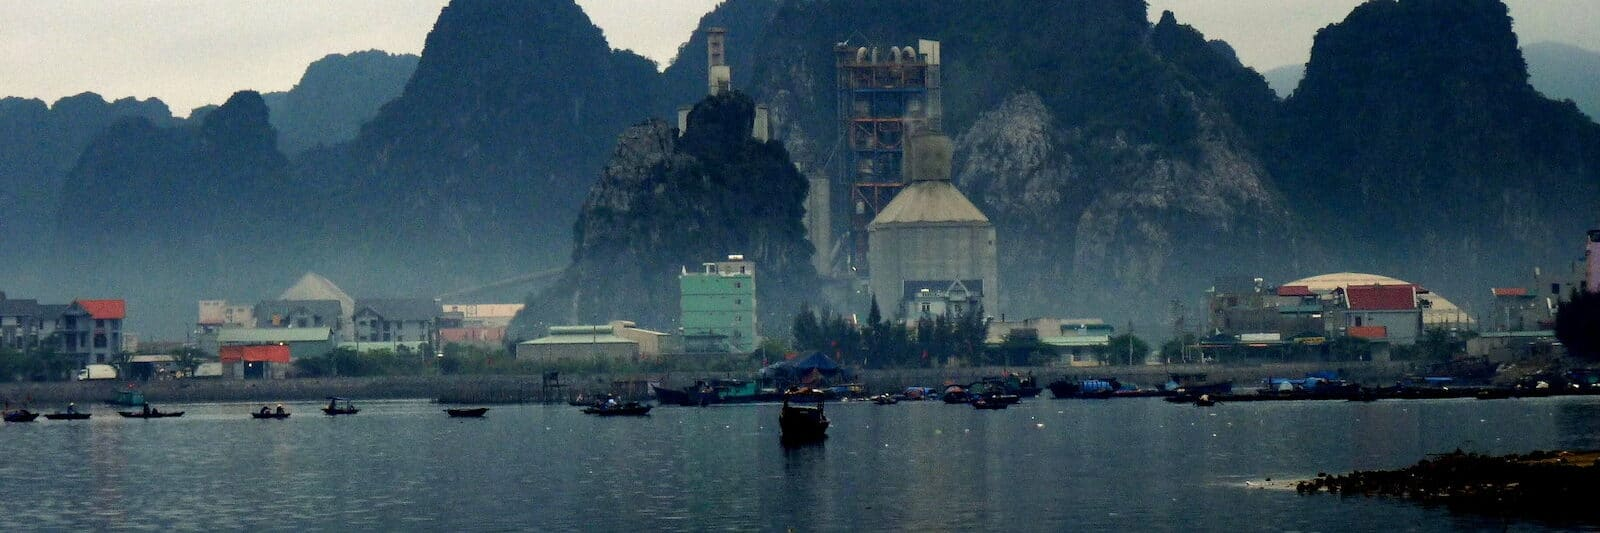 Image of a cement factory in Cam Pha, Vietnam